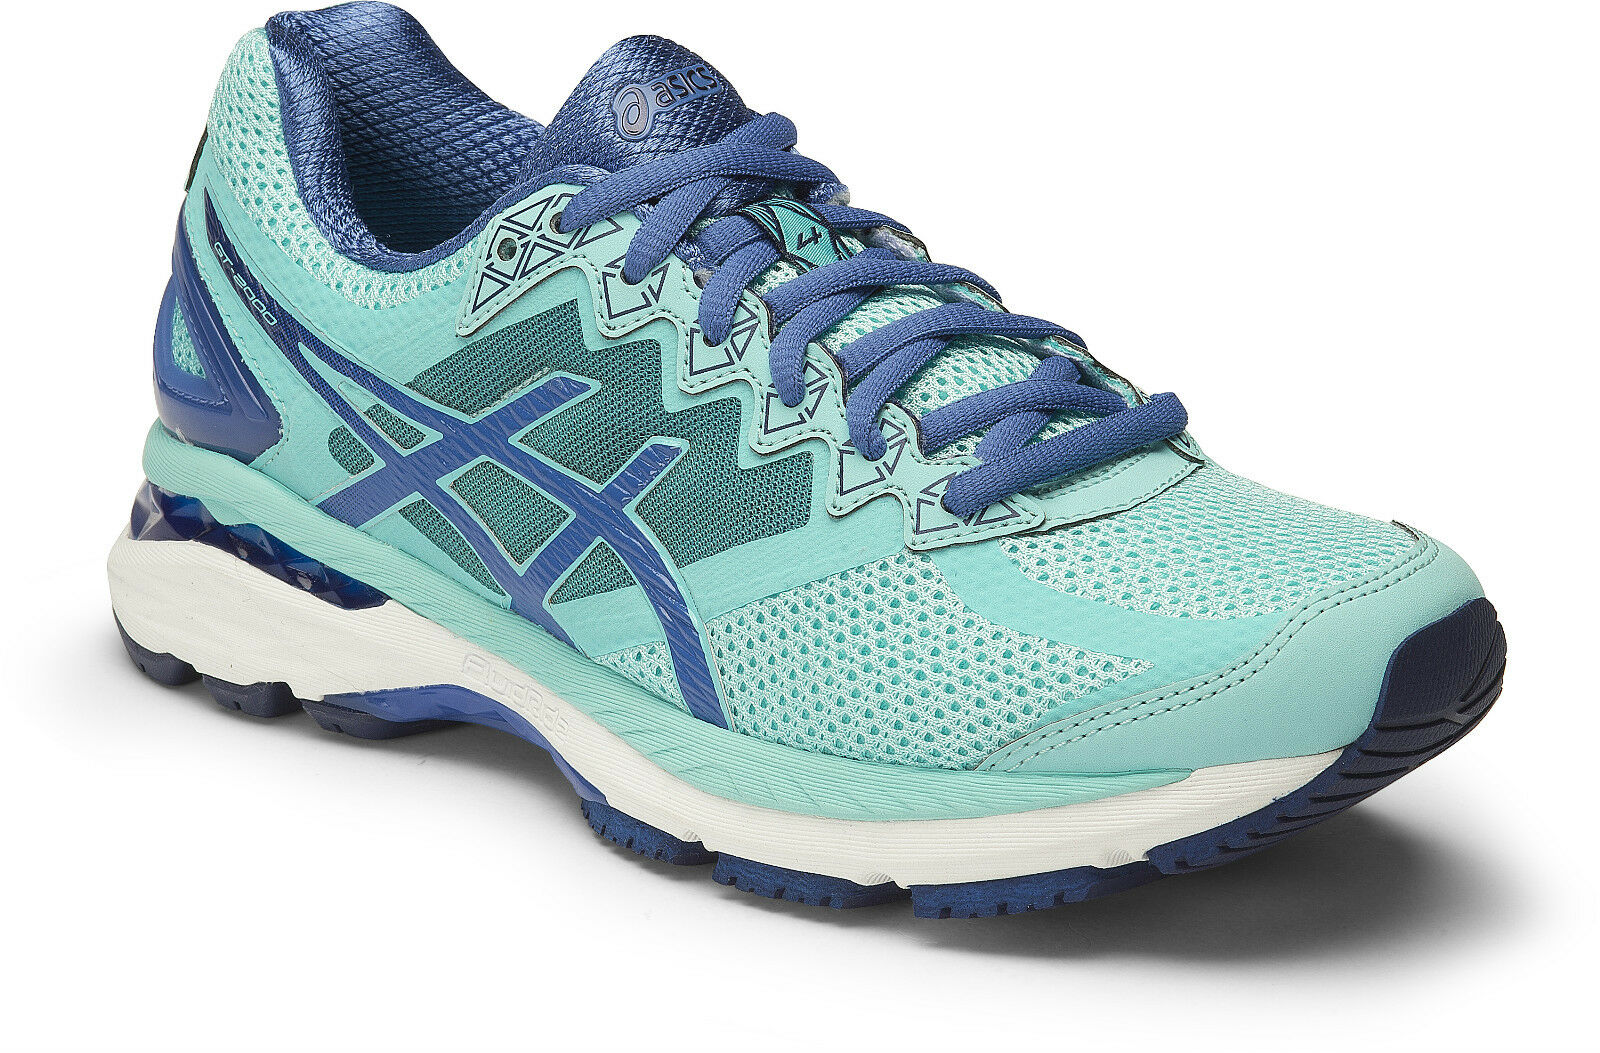 Asics GT 2000 4 Womens Running Shoe Price reduction Price reduction | SAVE Price reduction The latest discount shoes for men and women